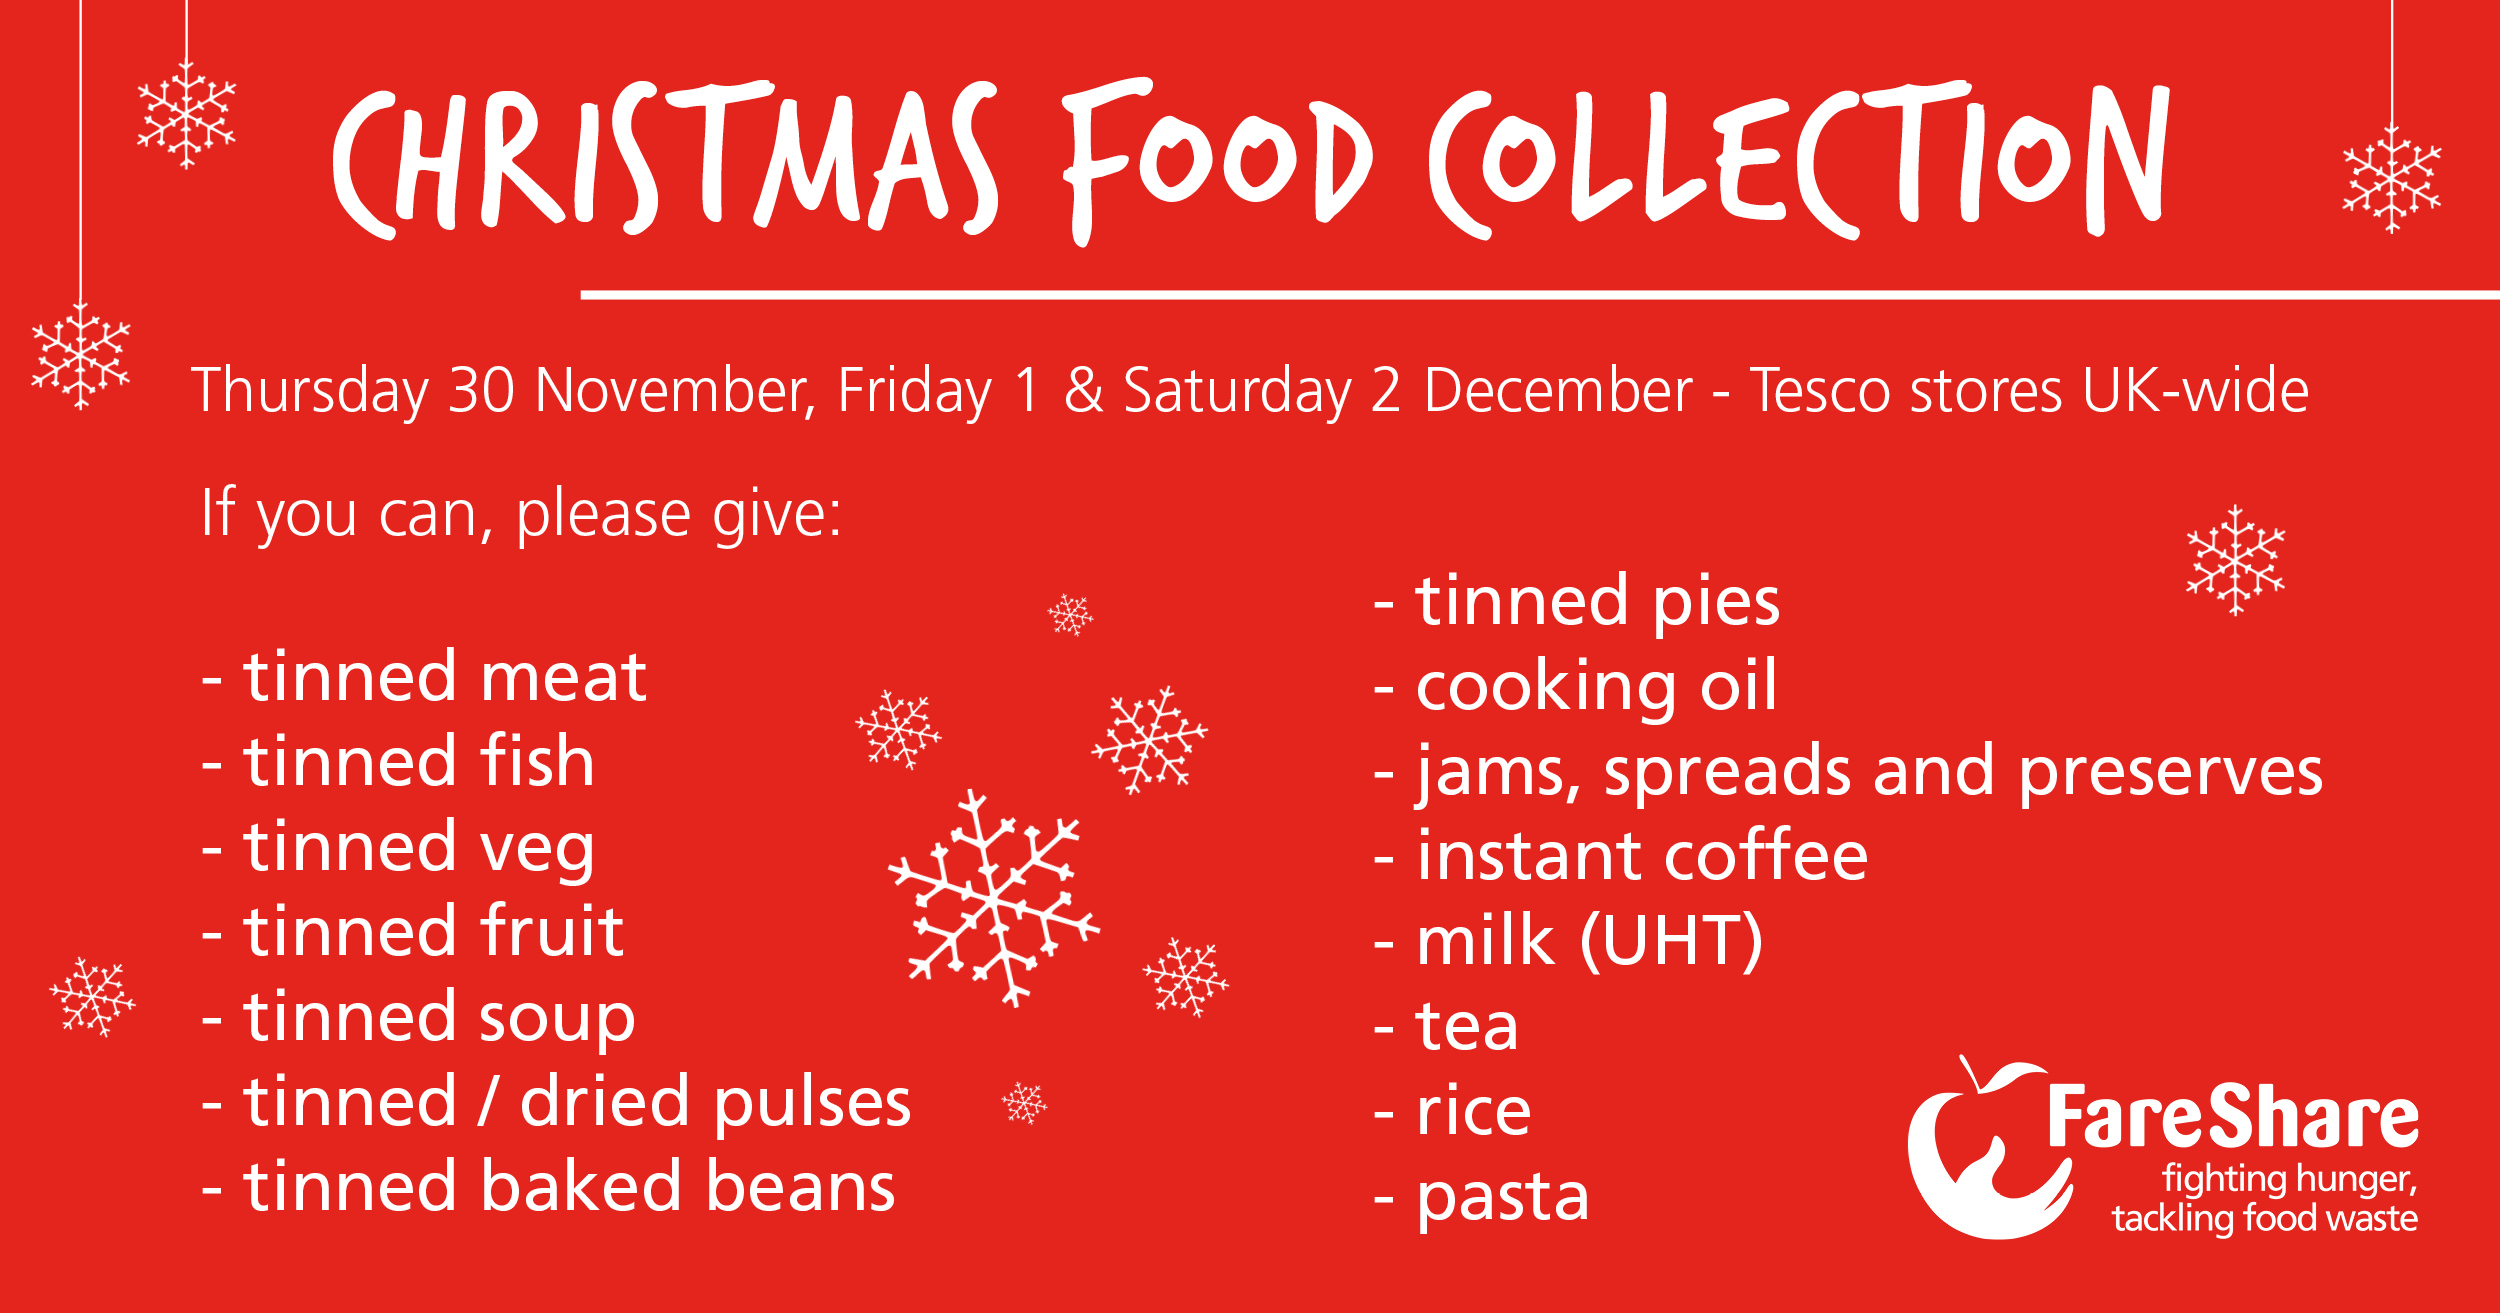 christmas food collection shopping list 2017